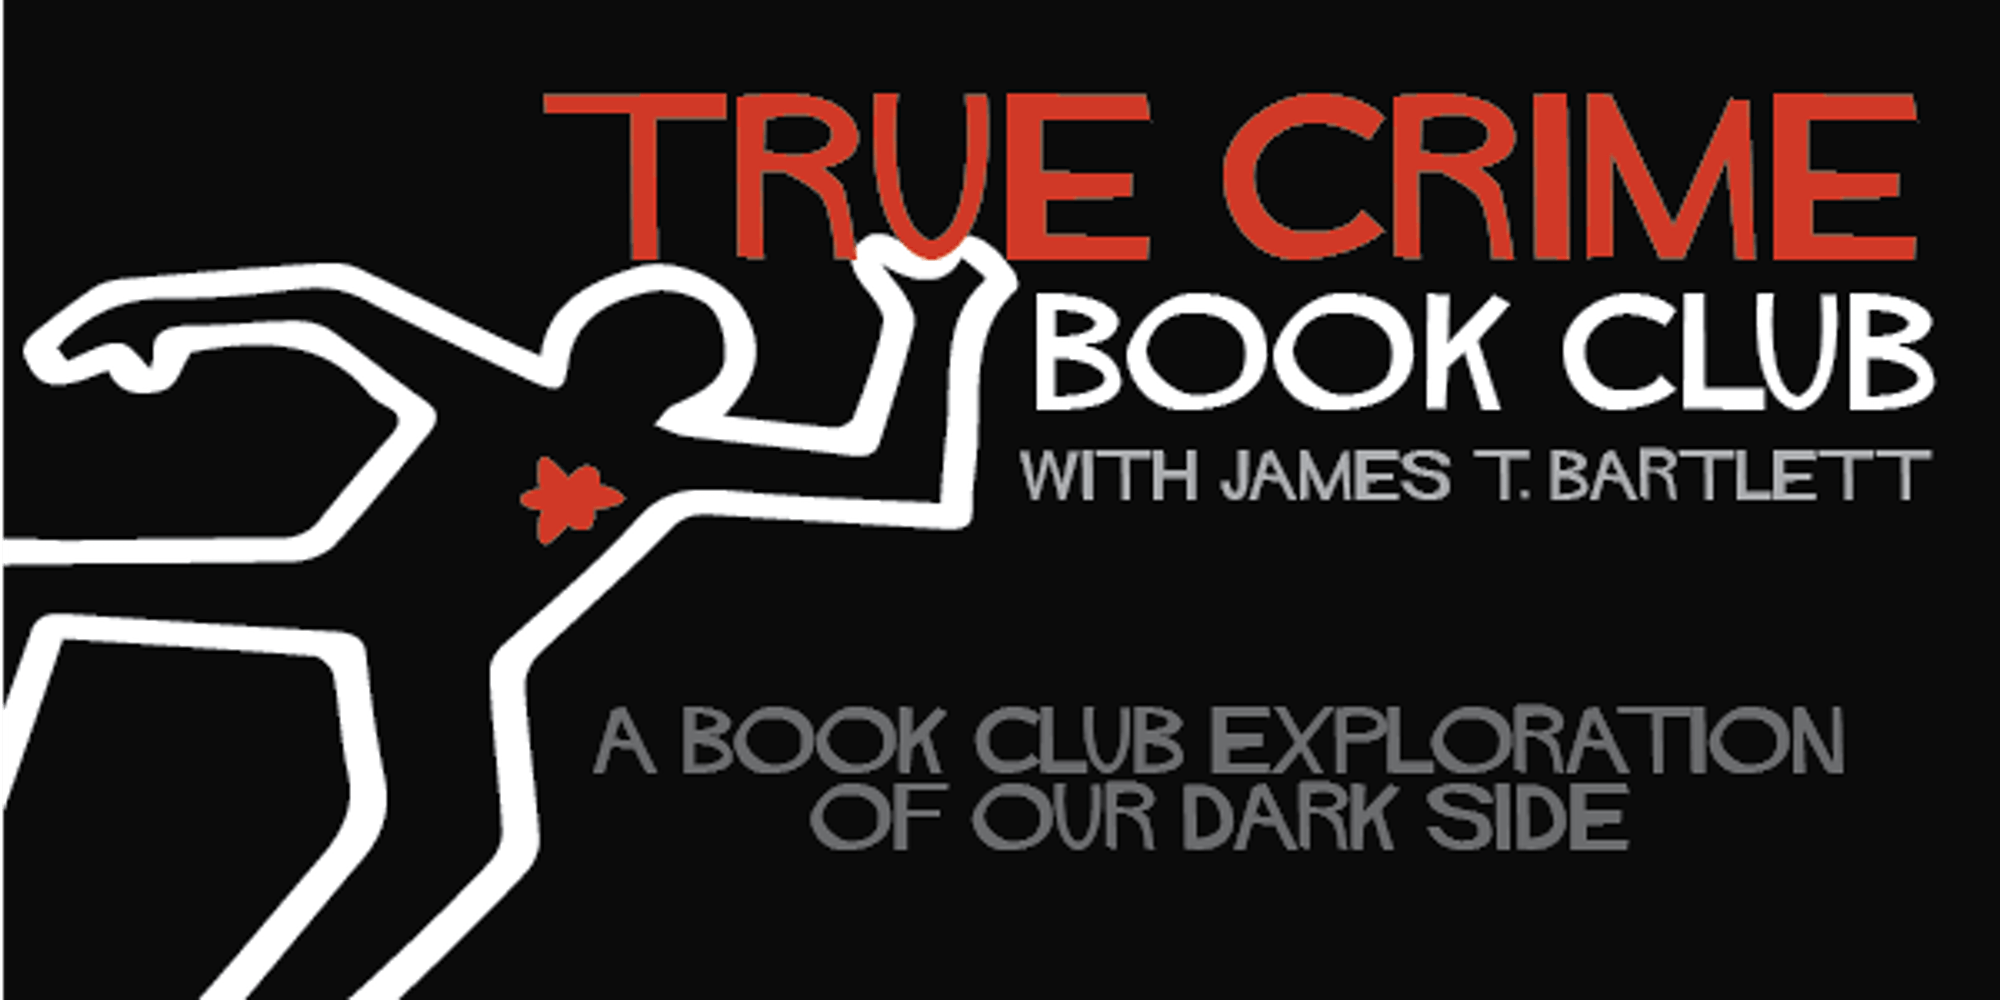 True Crime Book Club dead body outline logo